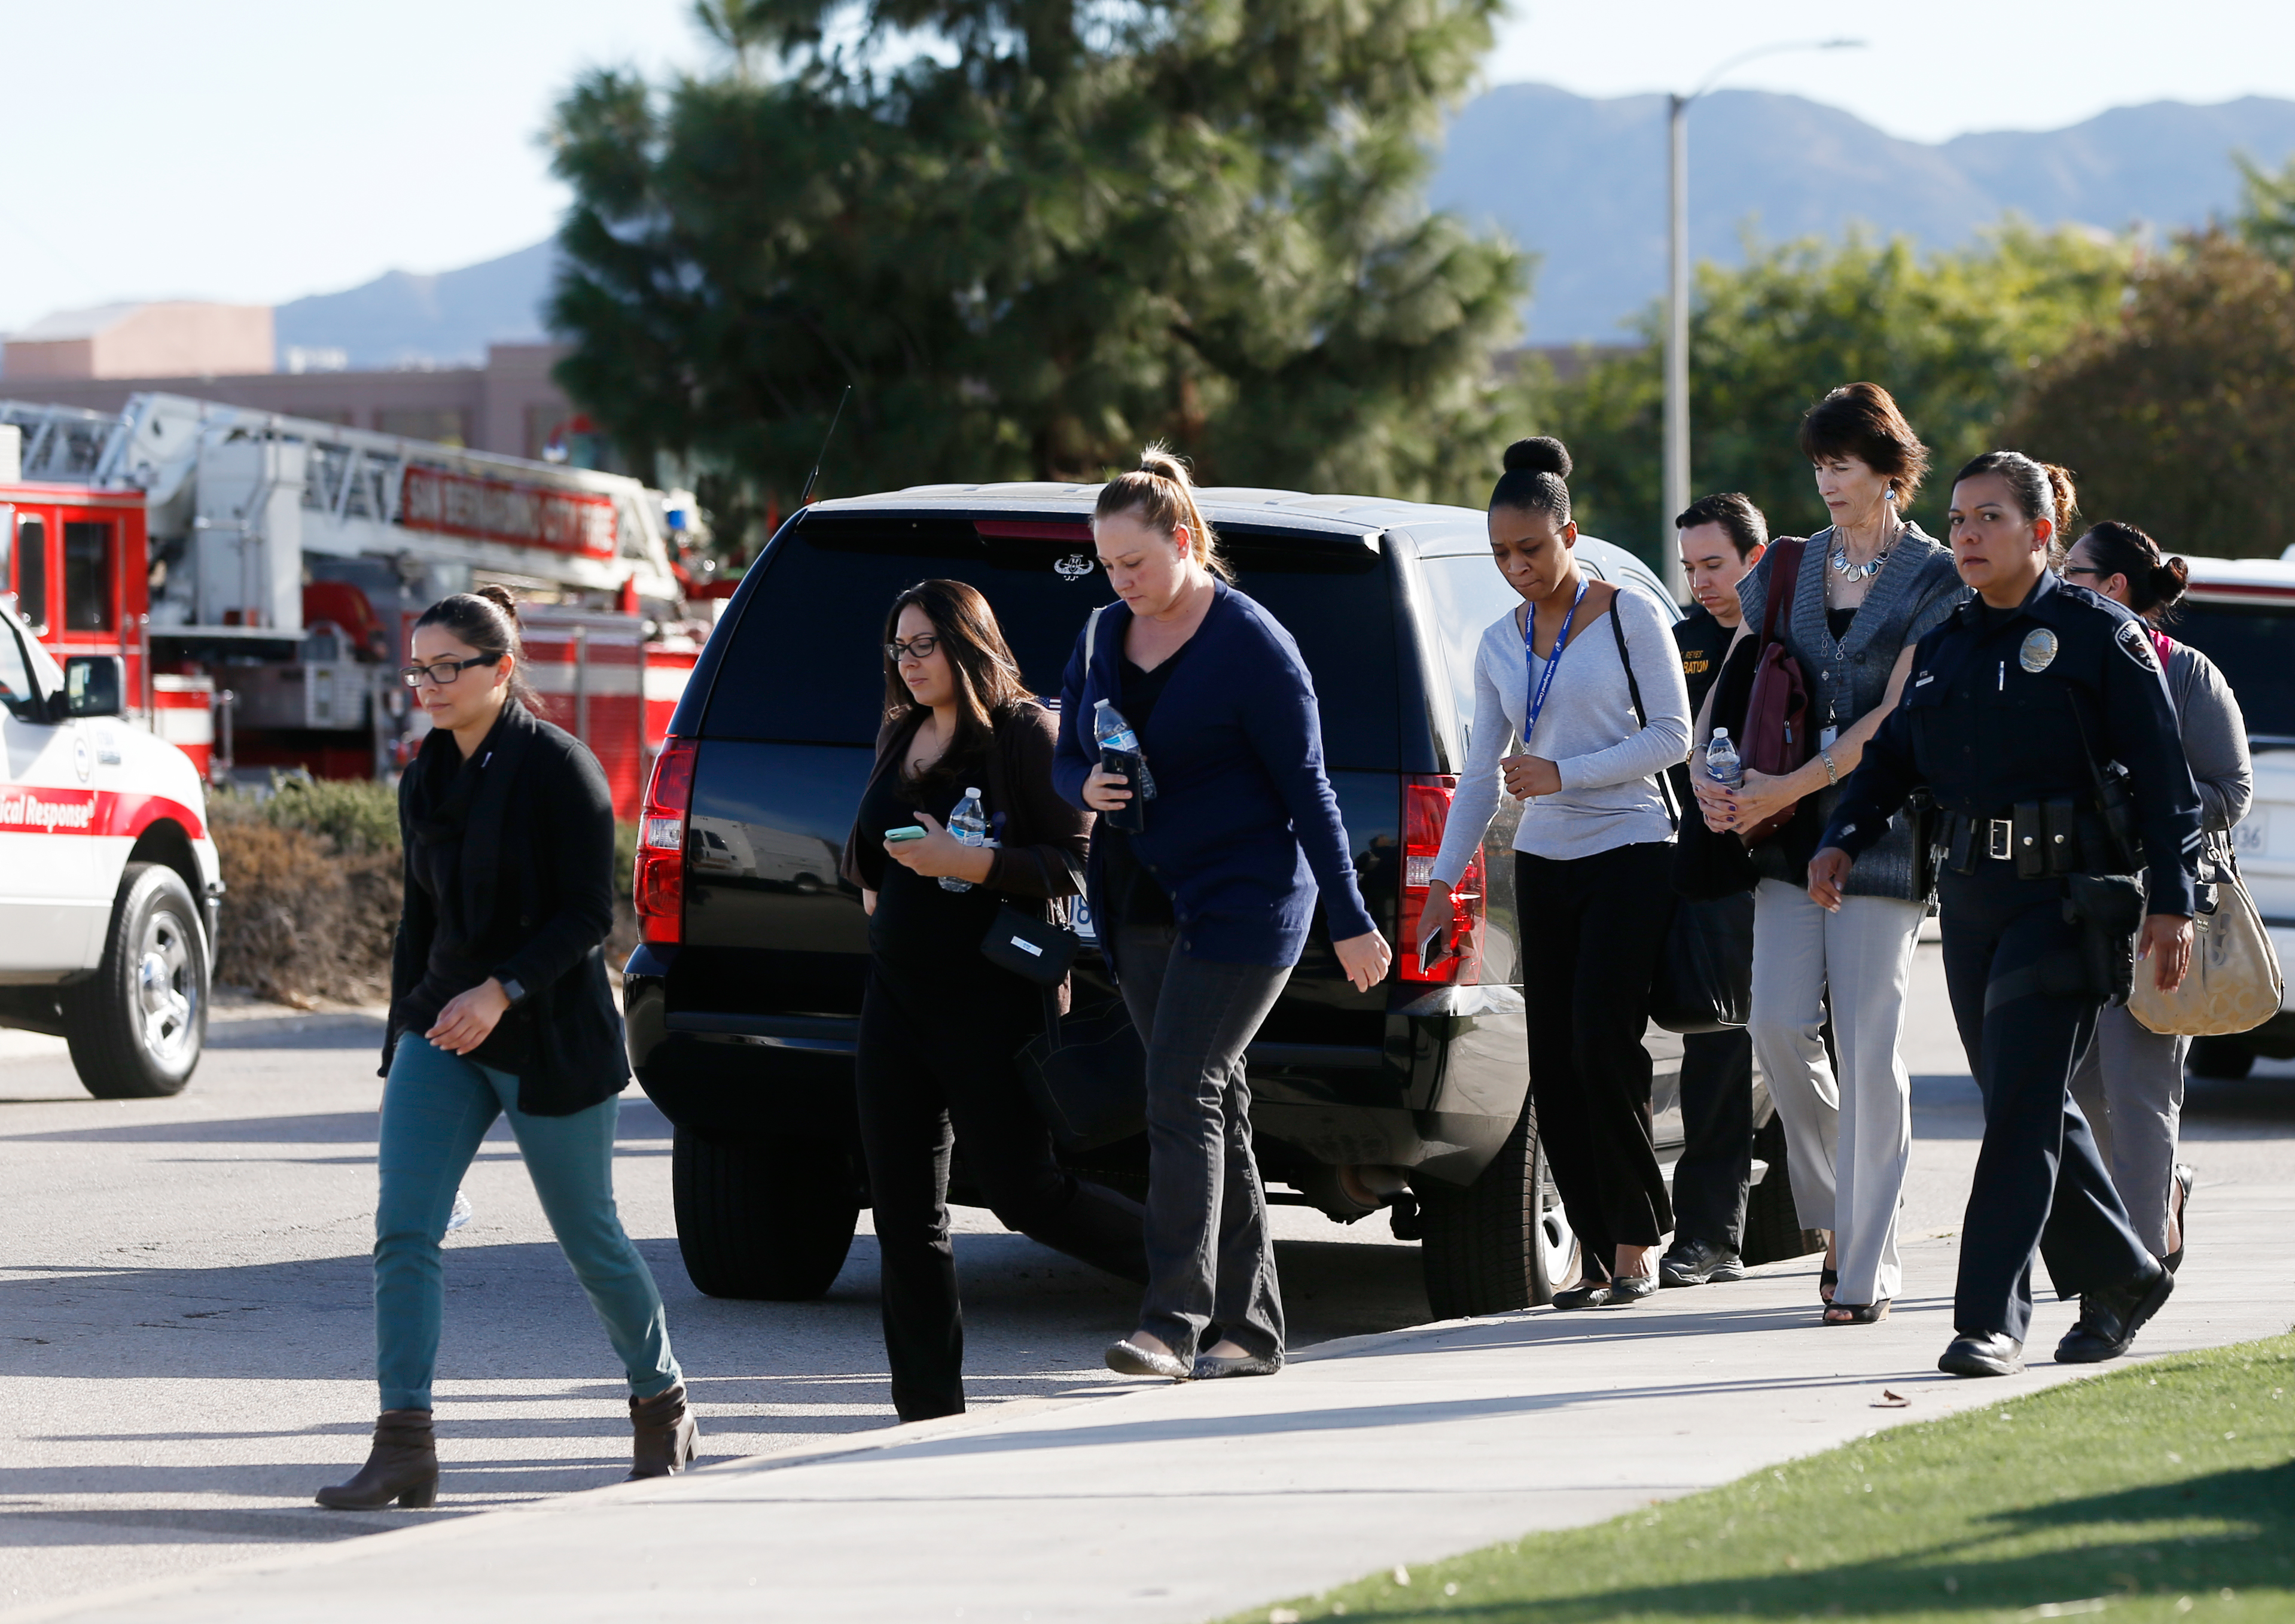 """The San Bernardino Police Department said on Twitter that it had """"confirmed 1 to 3 possible suspects"""" and multiple victims in the shooting. The agency called it an """"active shooter"""" incident. REUTERS/Mario Anzuoni - RTX1WWLD"""